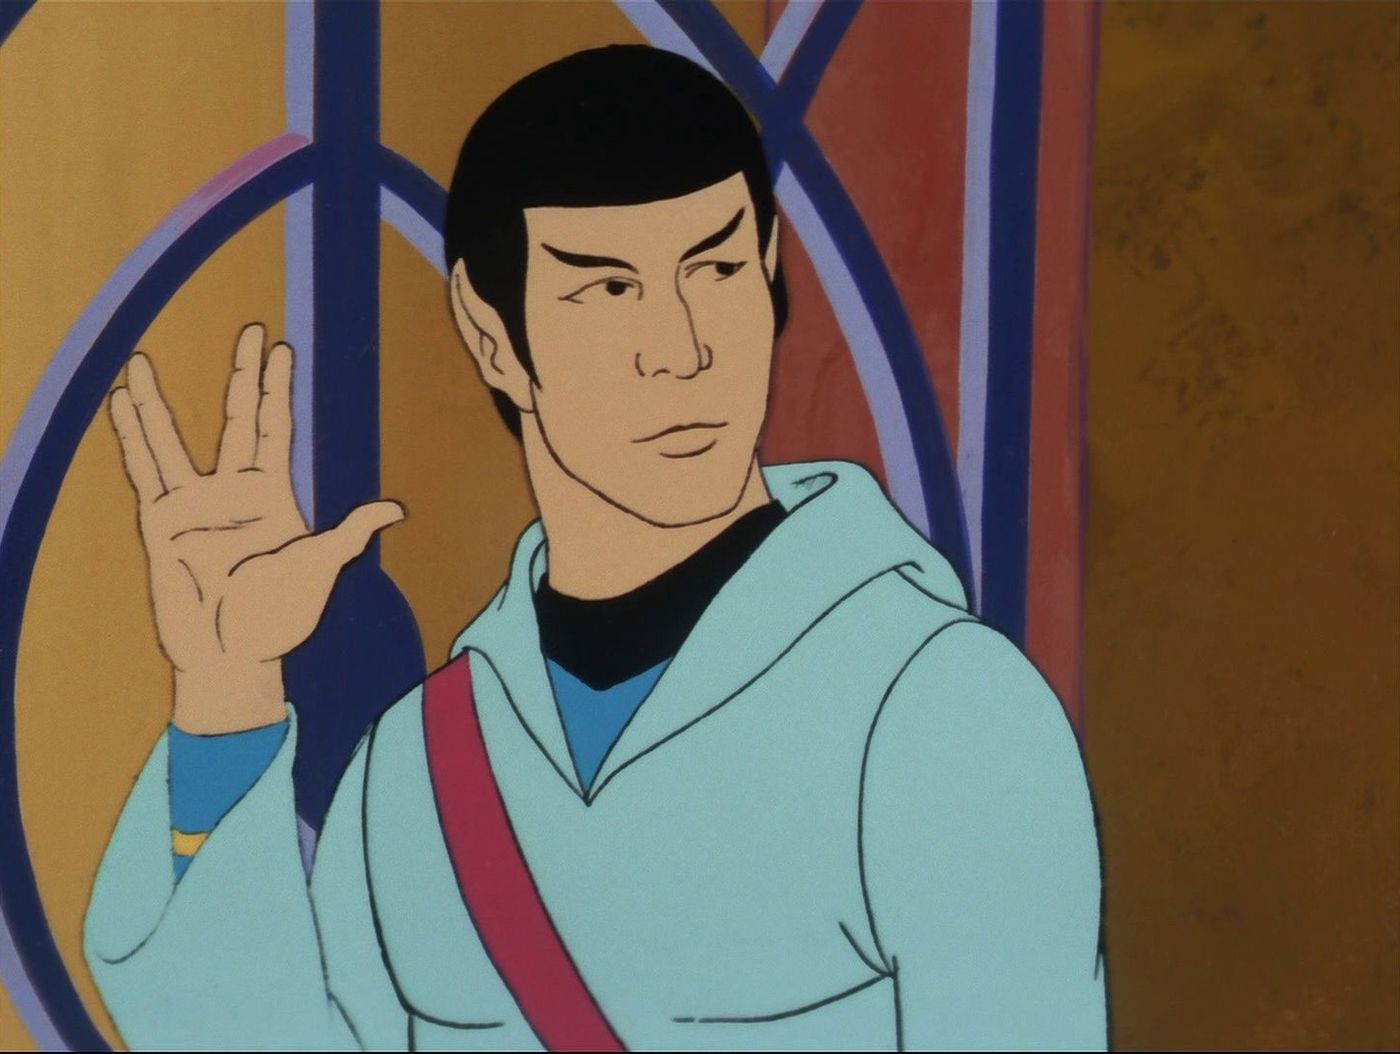 The evolution of Spock, from a scrapped Star Trek pilot to Discovery